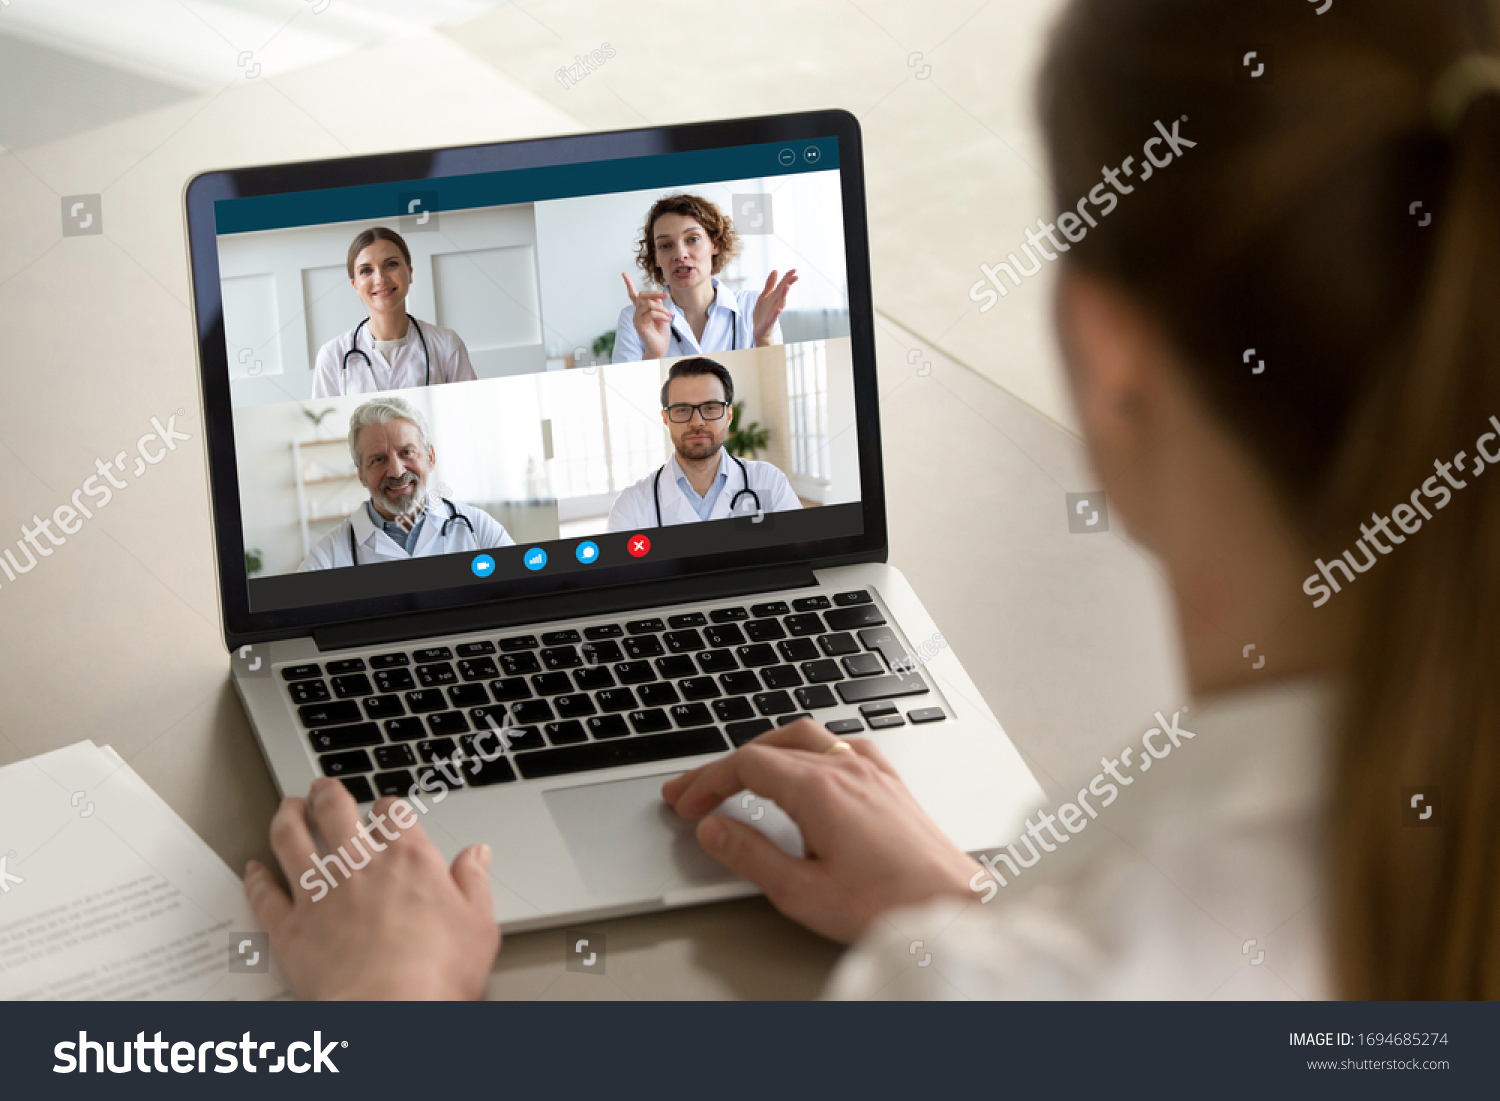 View over client shoulder sit at desk receive medical consultation on-line from diverse specialists. Woman listen doctors about corona virus precautionary measures, videoconference laptop webcam view #1694685274